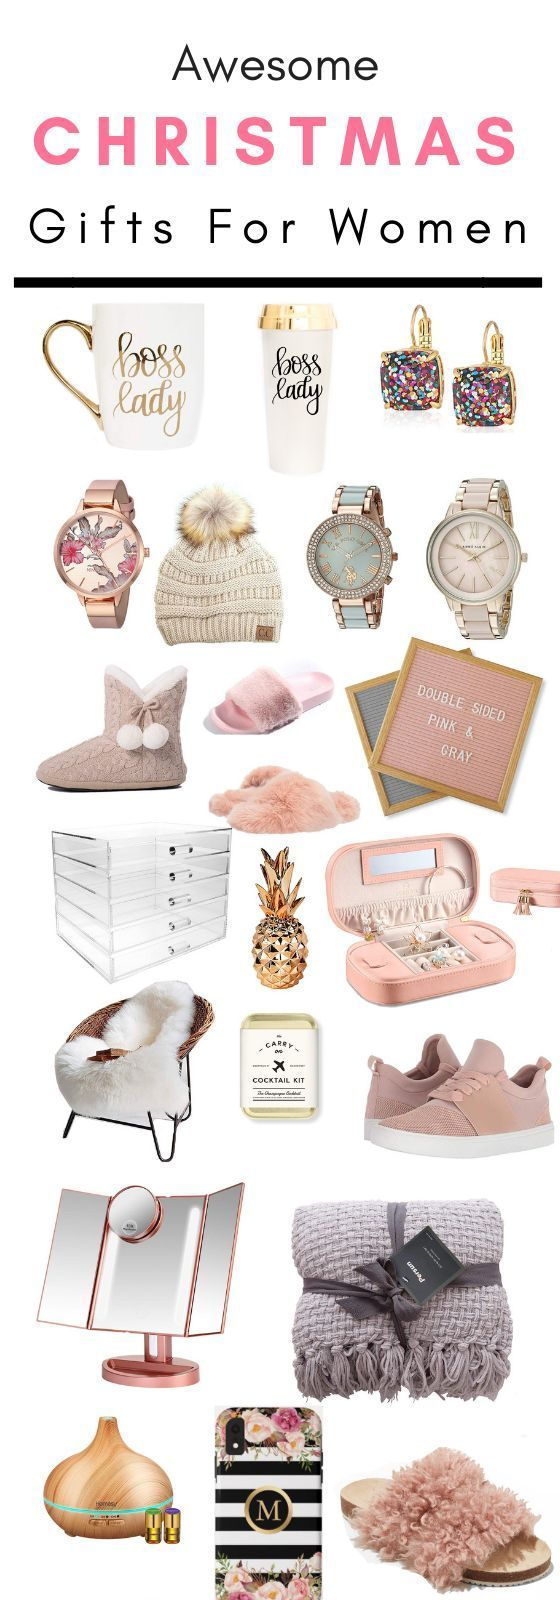 Unique Christmas Gifts For Women Who Have Everything Under 100 Unique Christmas Gifts Presents For Girlfriend Law Christmas